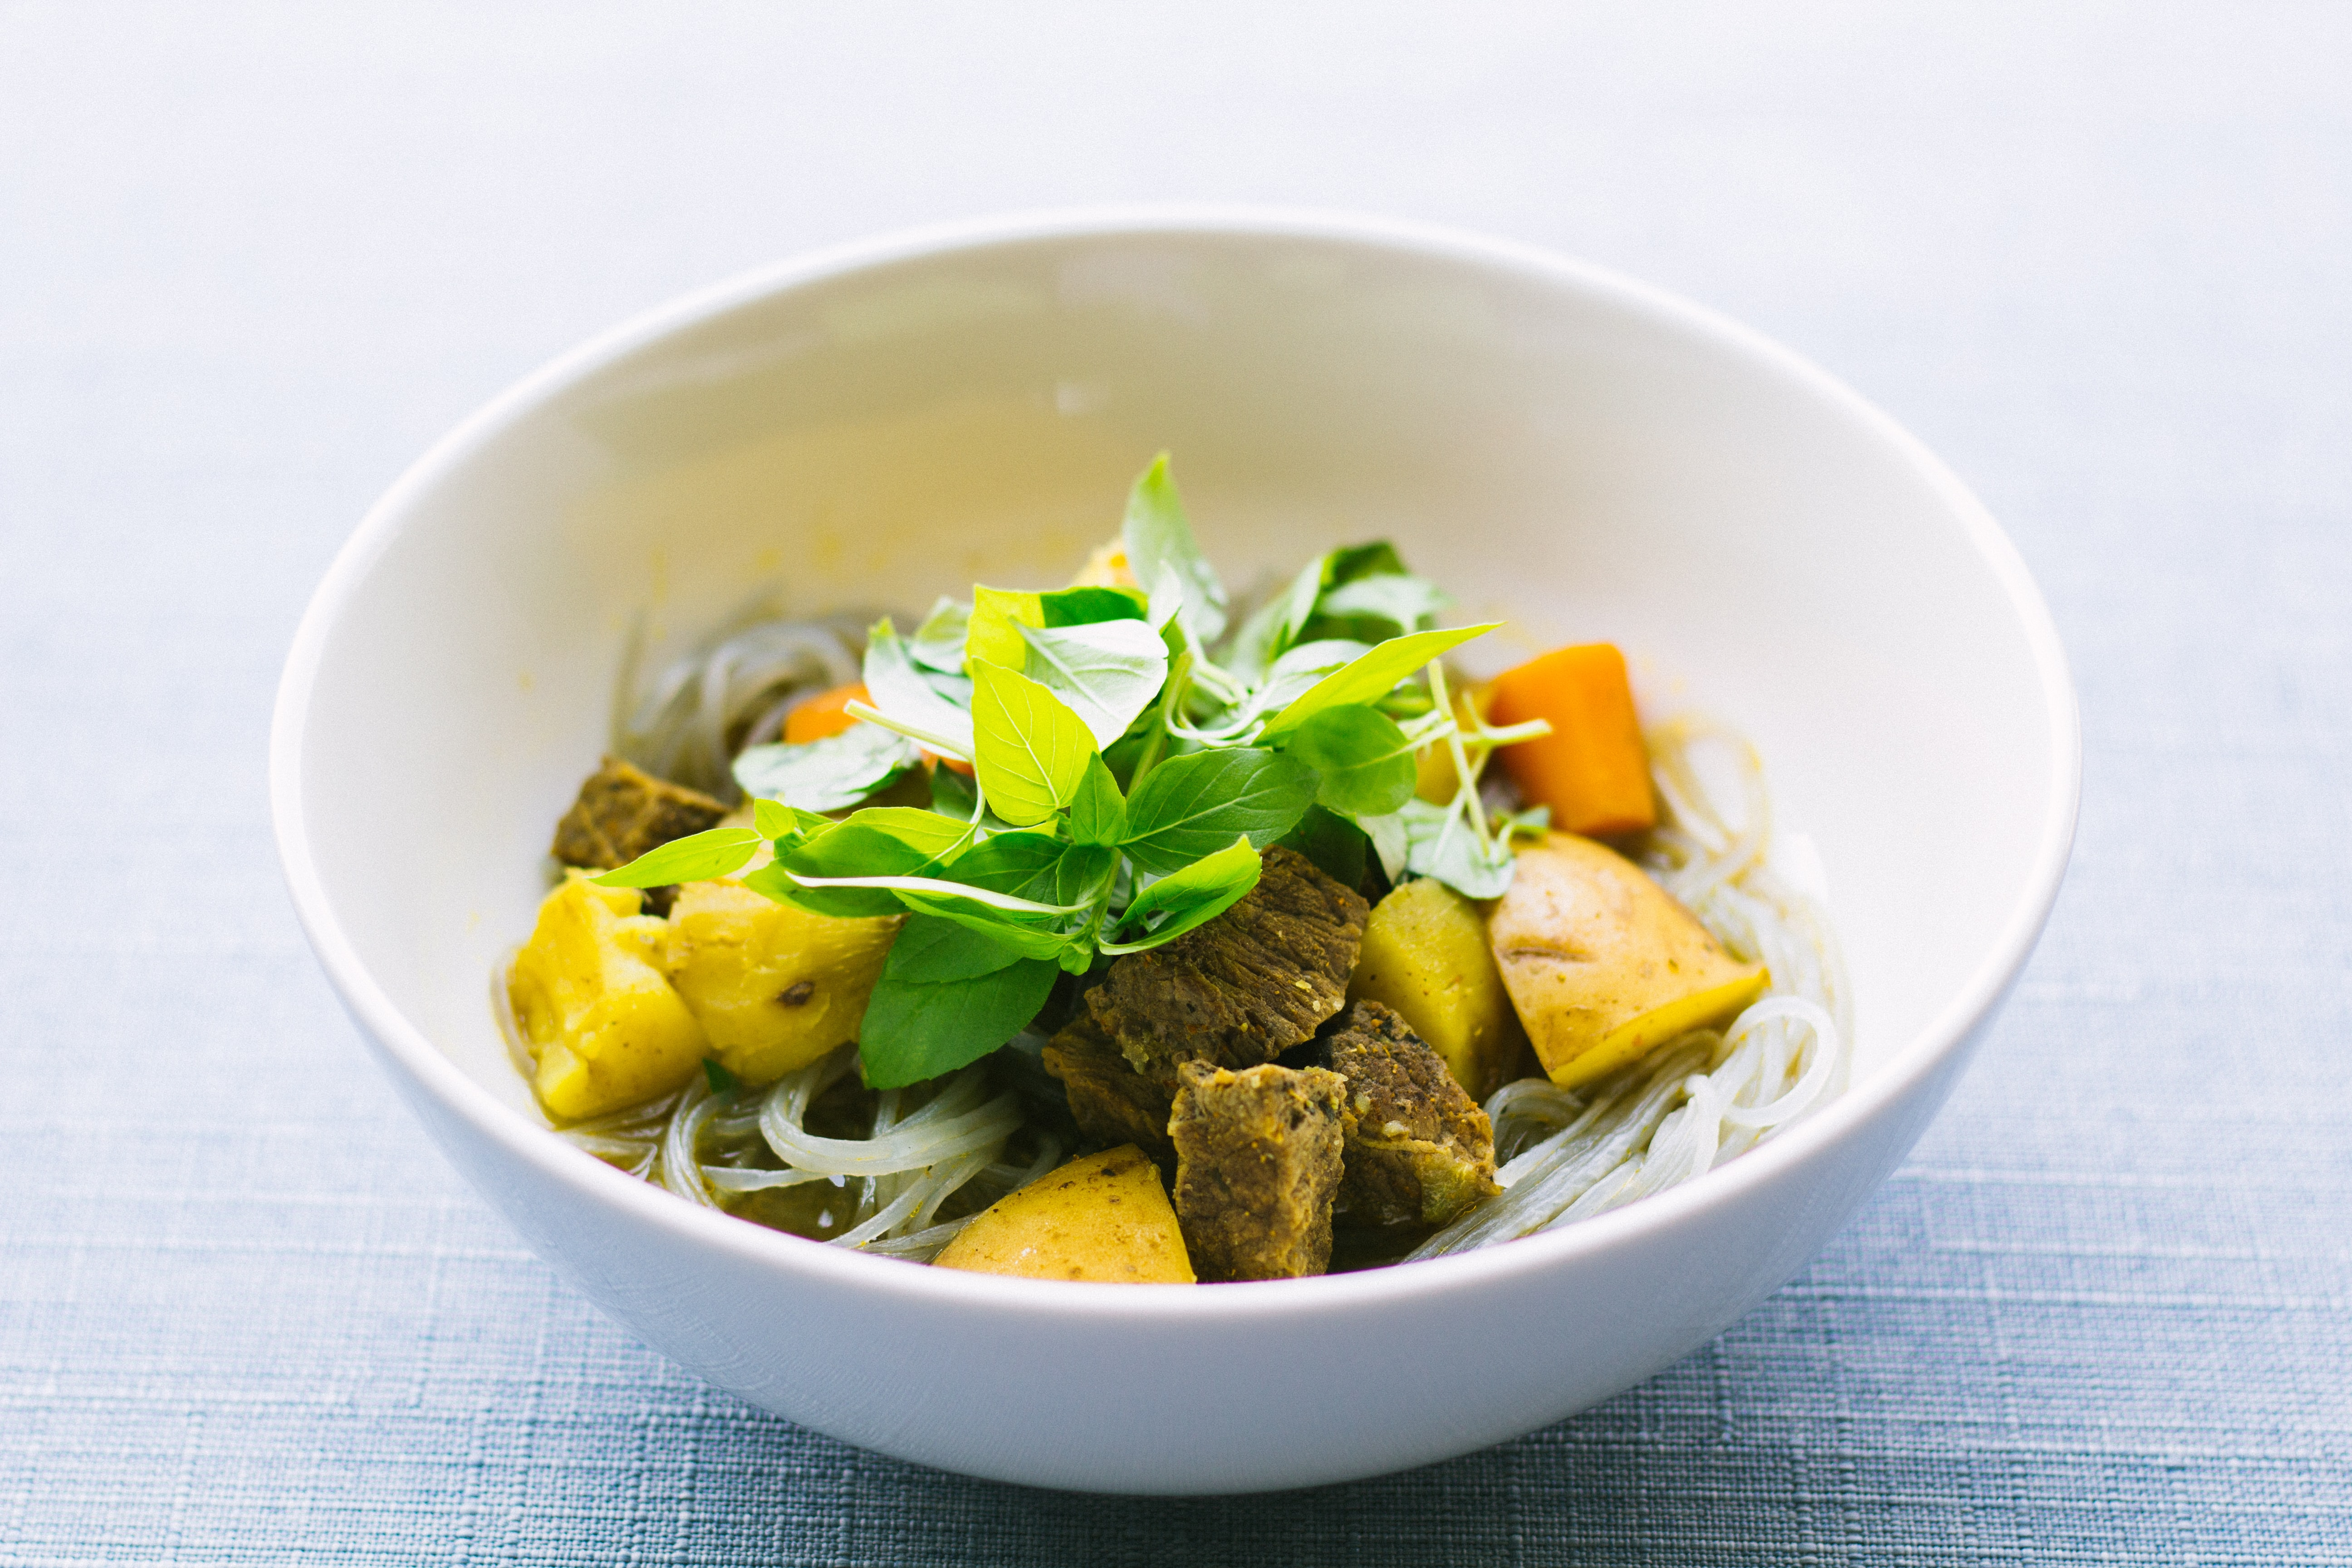 Bowl of Vietnamese noodles with meat and vegetables